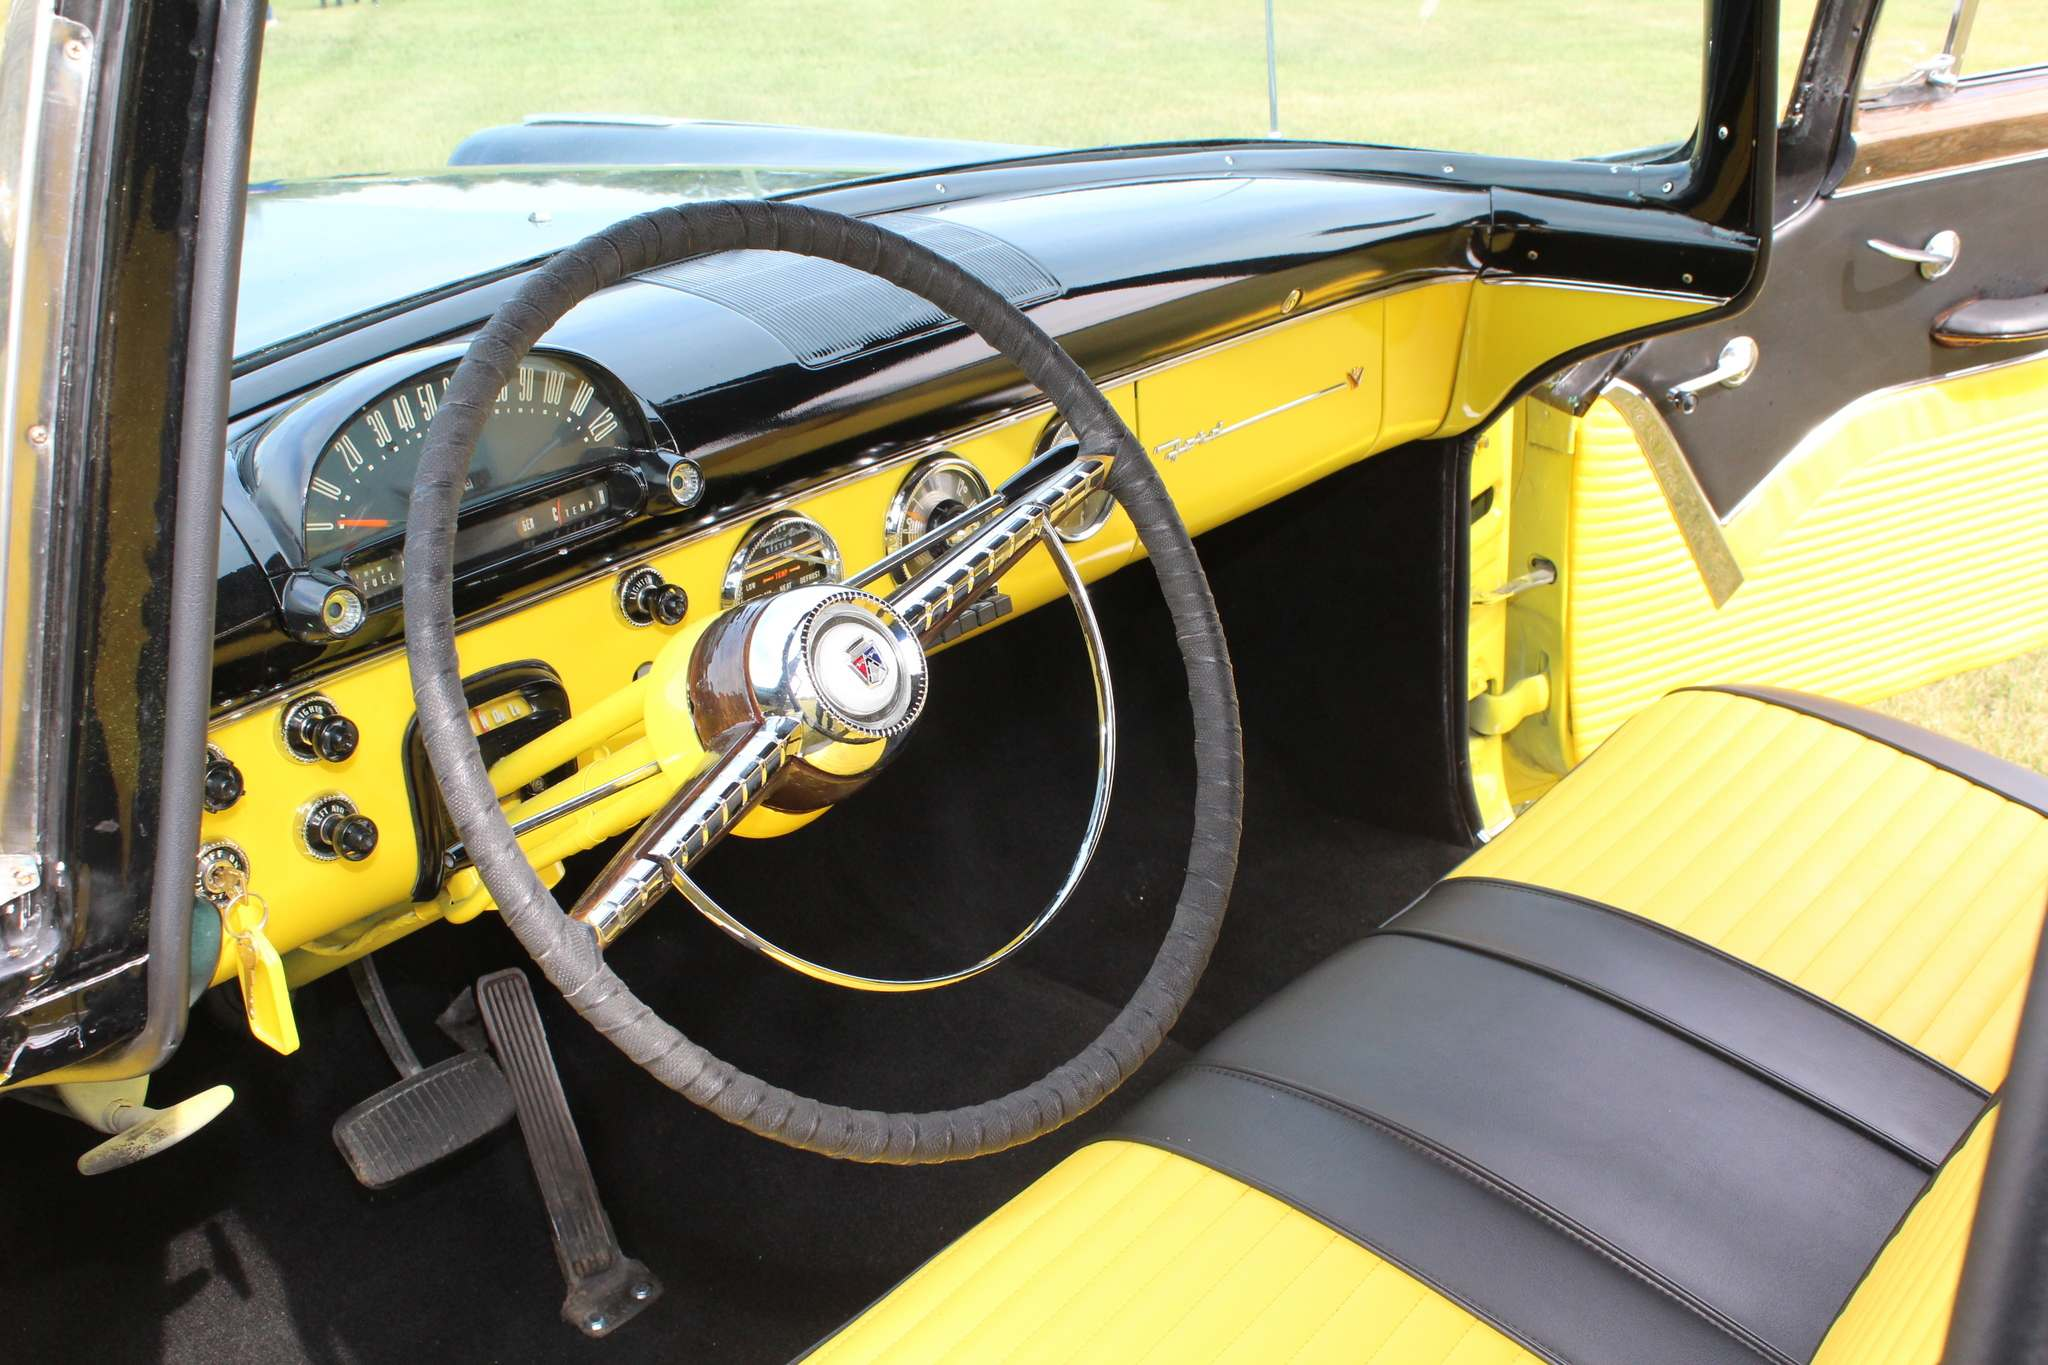 Automotive News Fabulous Fairlane Ready To Show And Go 1955 Ford F100 Painted Flat Black Larry Dargis Winnipeg Free Presscustom Rolled Pleated Yellow Vinyl Upholstery